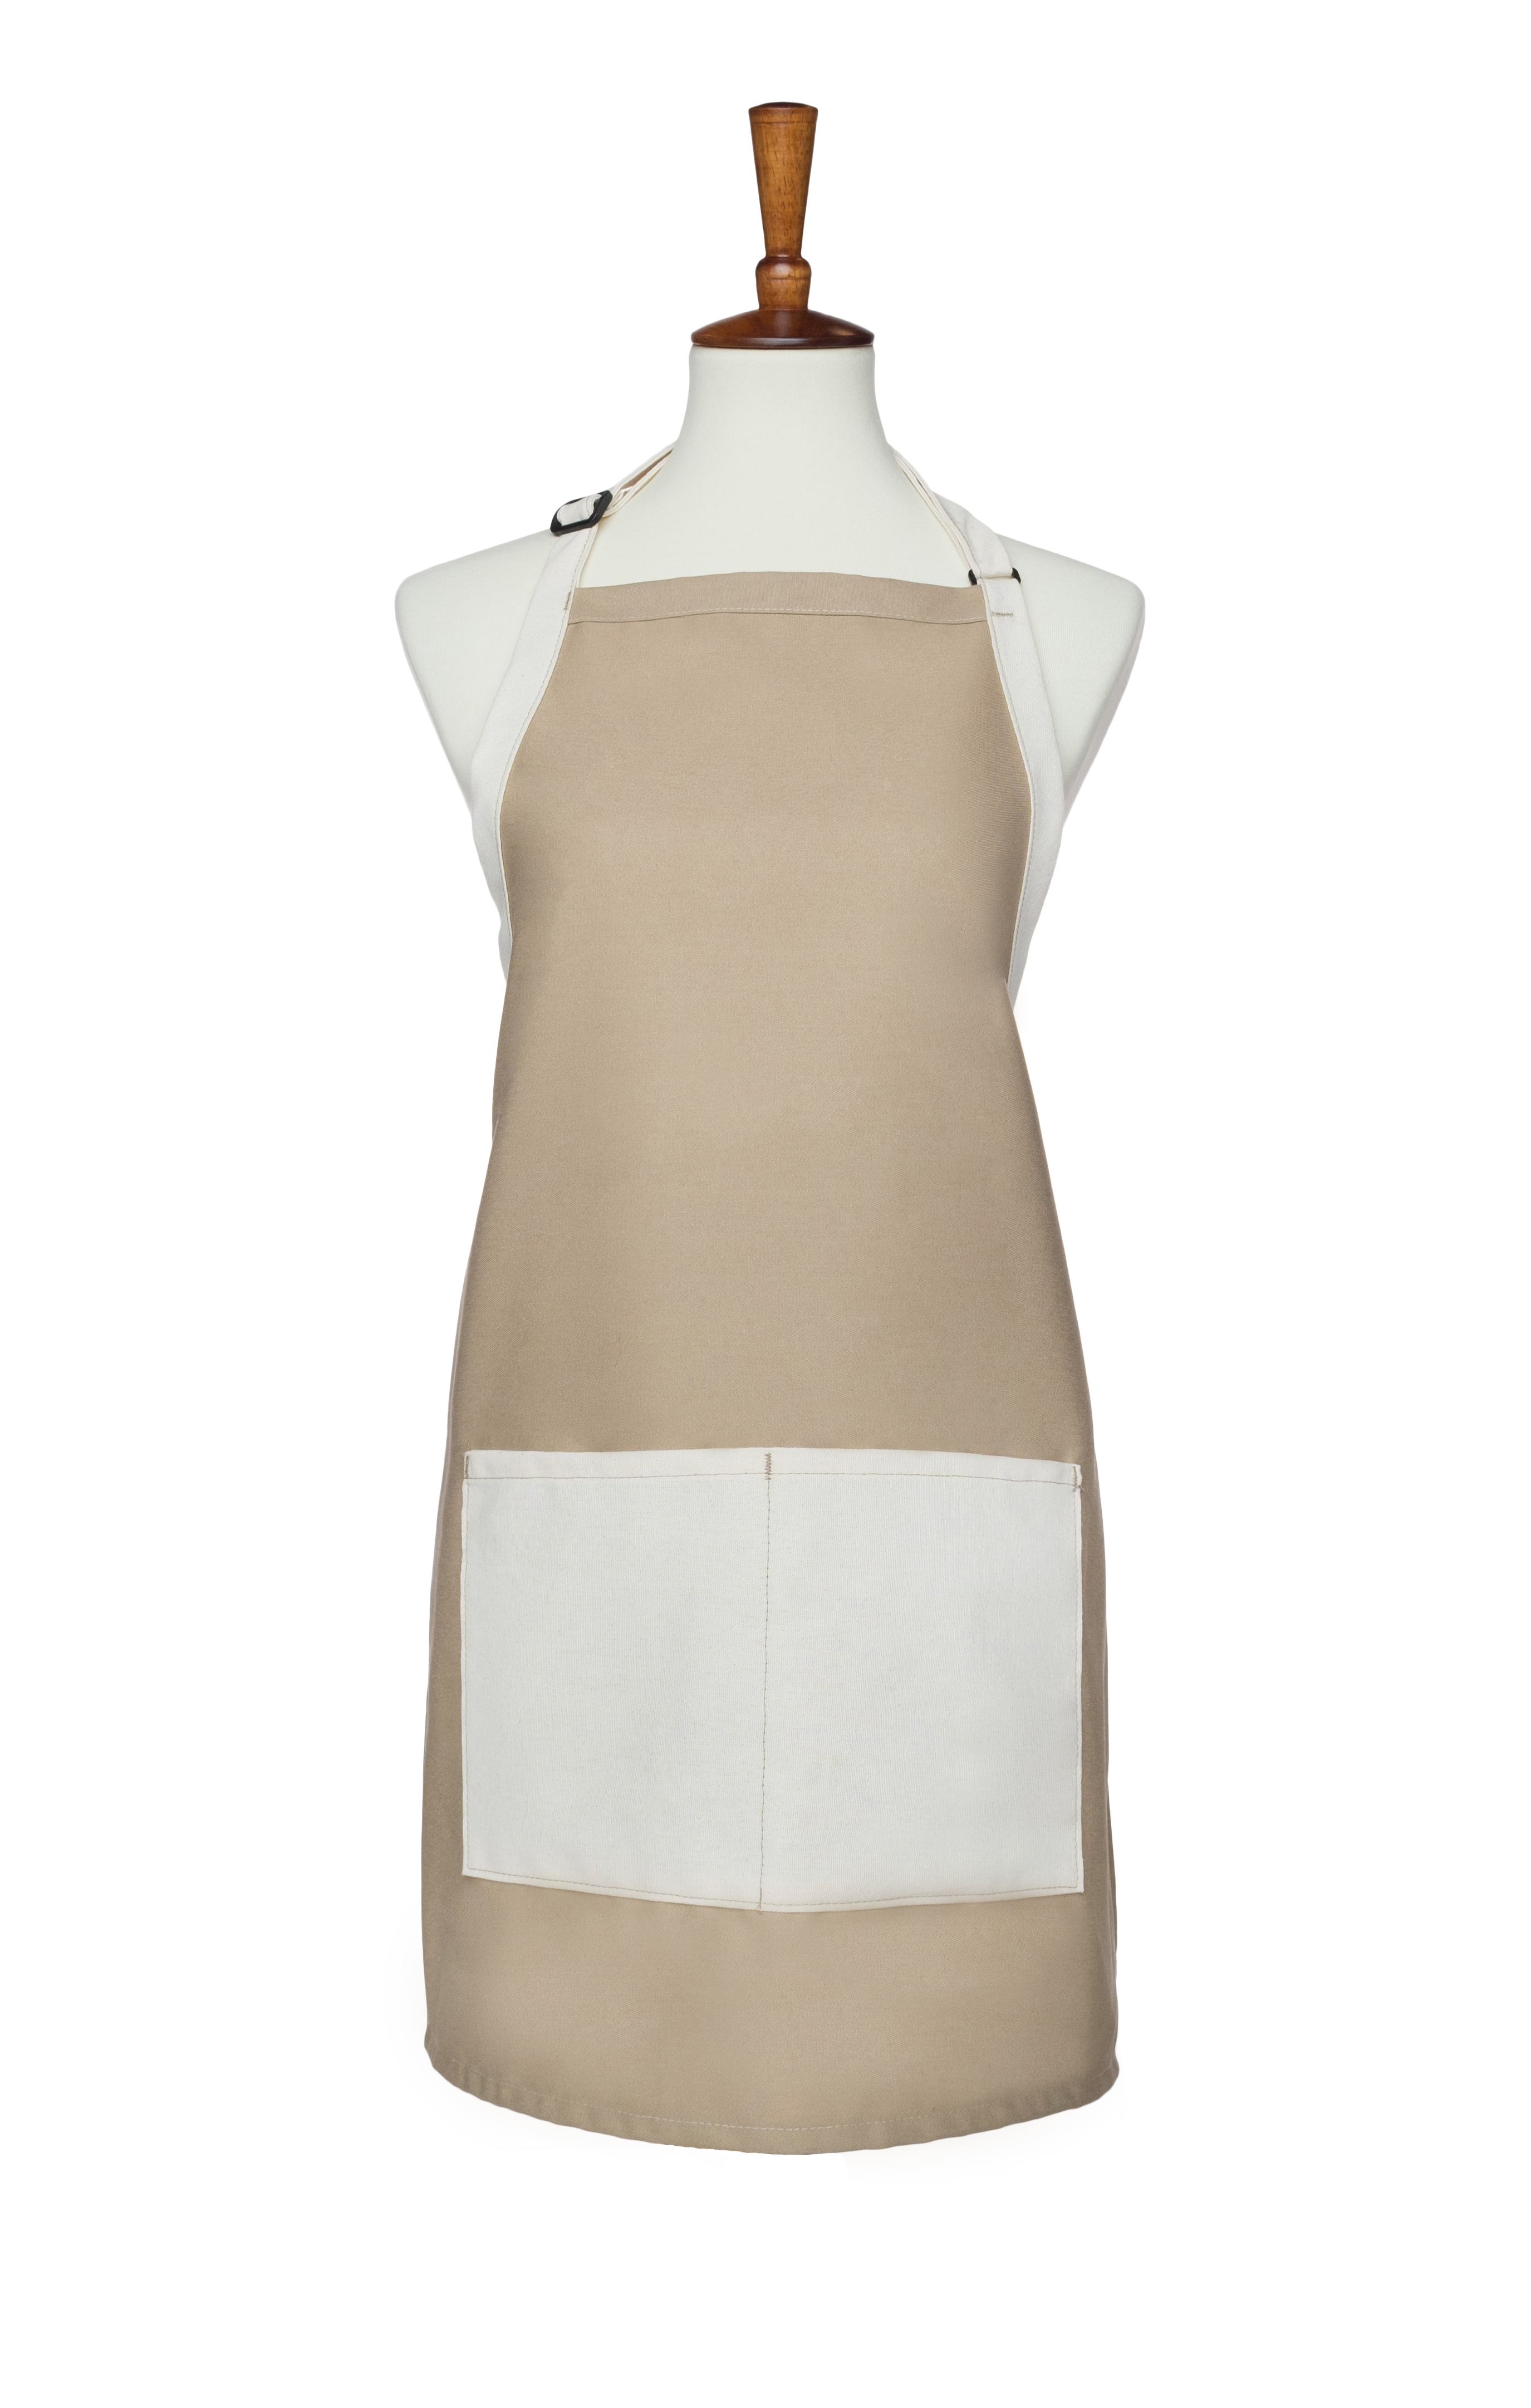 NEW! Two Pocket Two Tone Multi Color Bib Apron